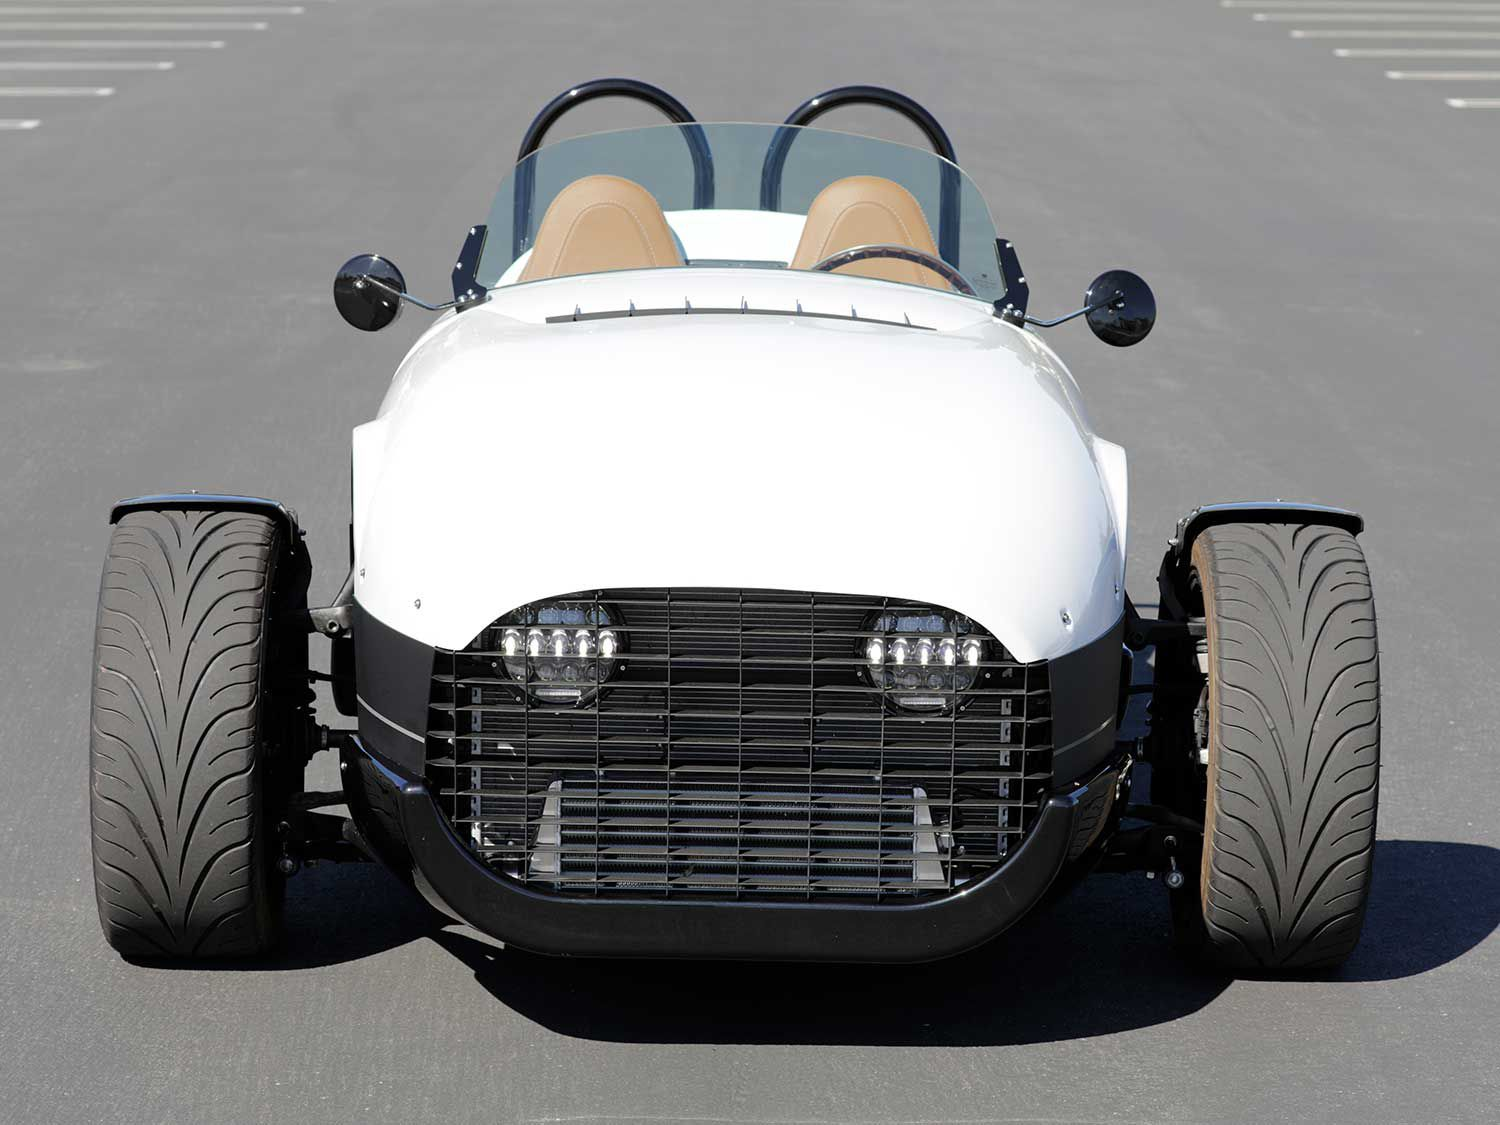 The Vanderhall Motor Works Venice GT can be driven in California without a motorcycle endorsement. However, driver and passenger are required to wear a DOT-labeled helmet.